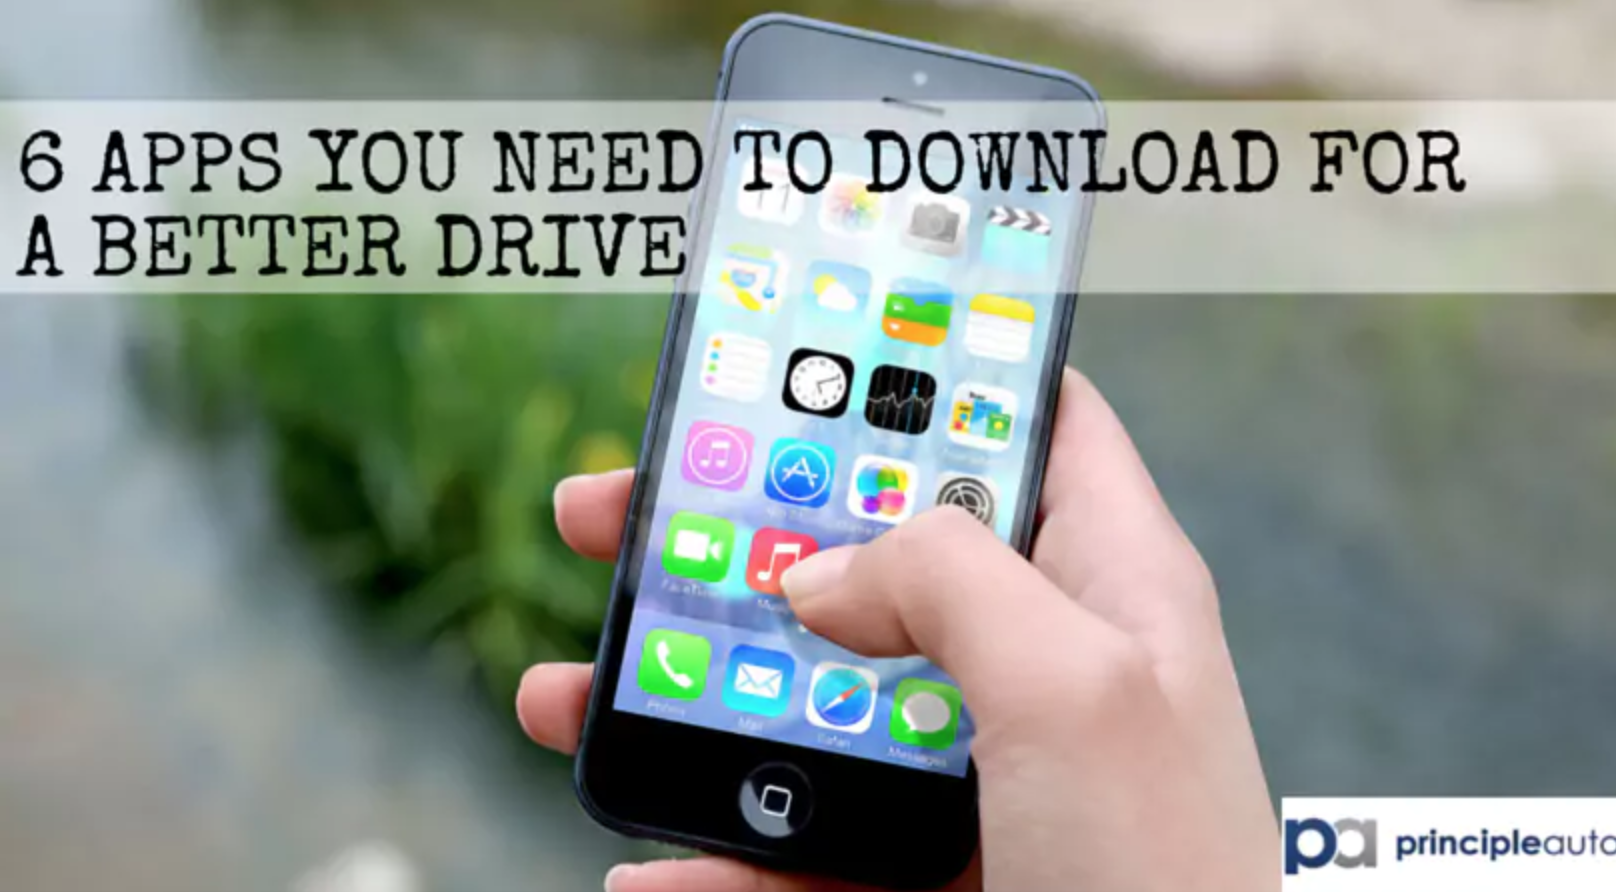 6 Apps You Need For a Better Drive